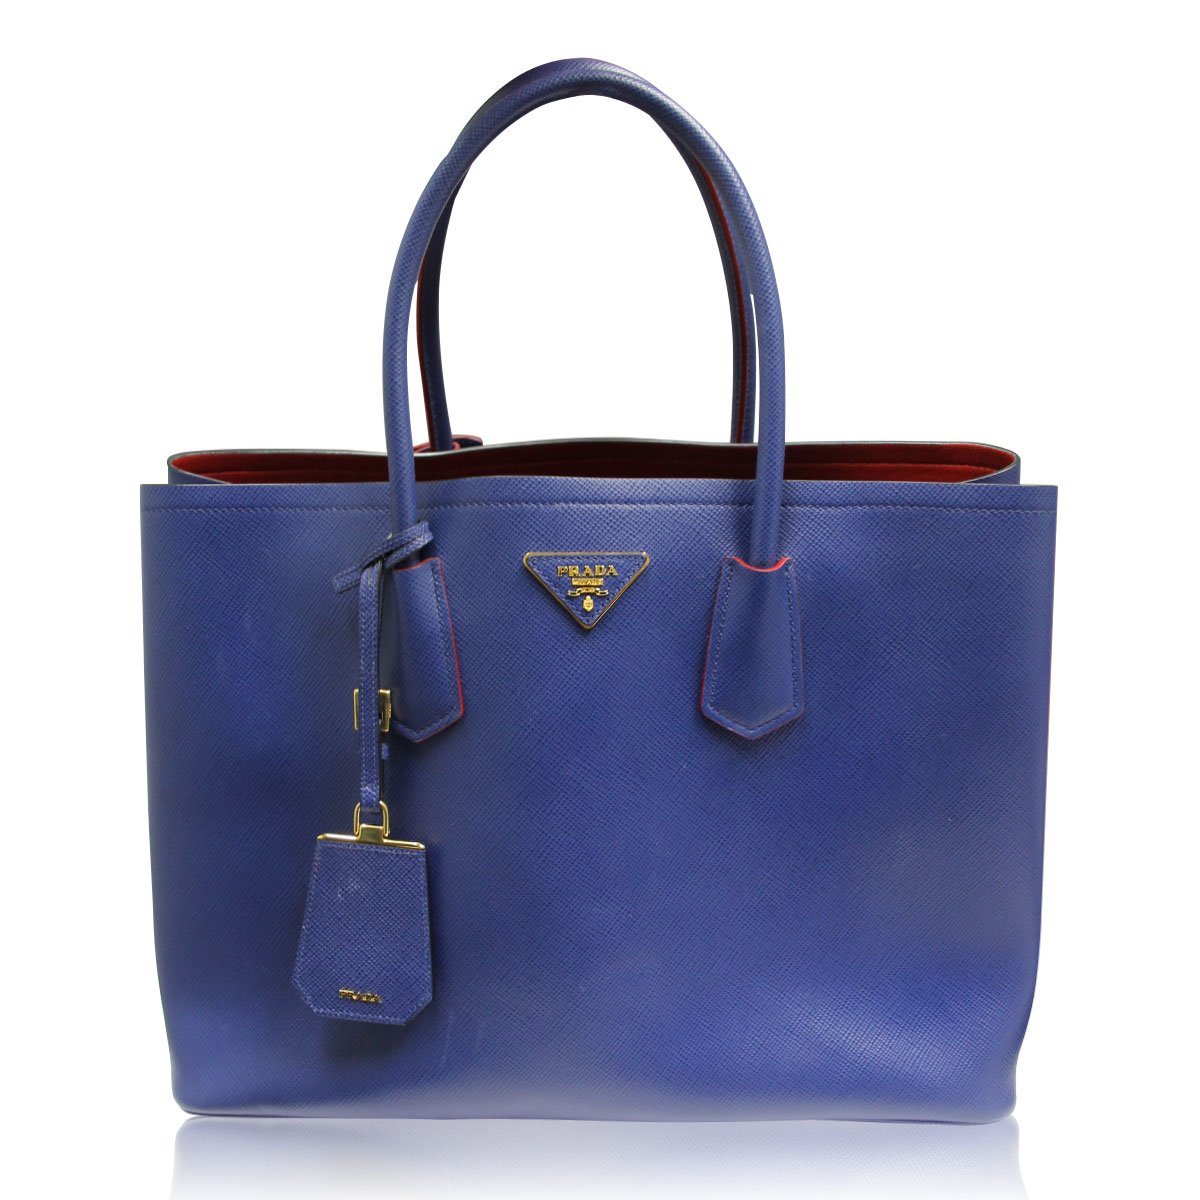 Prada Saffiano Cuir Double Bag Blue and Red Large Tote Bag